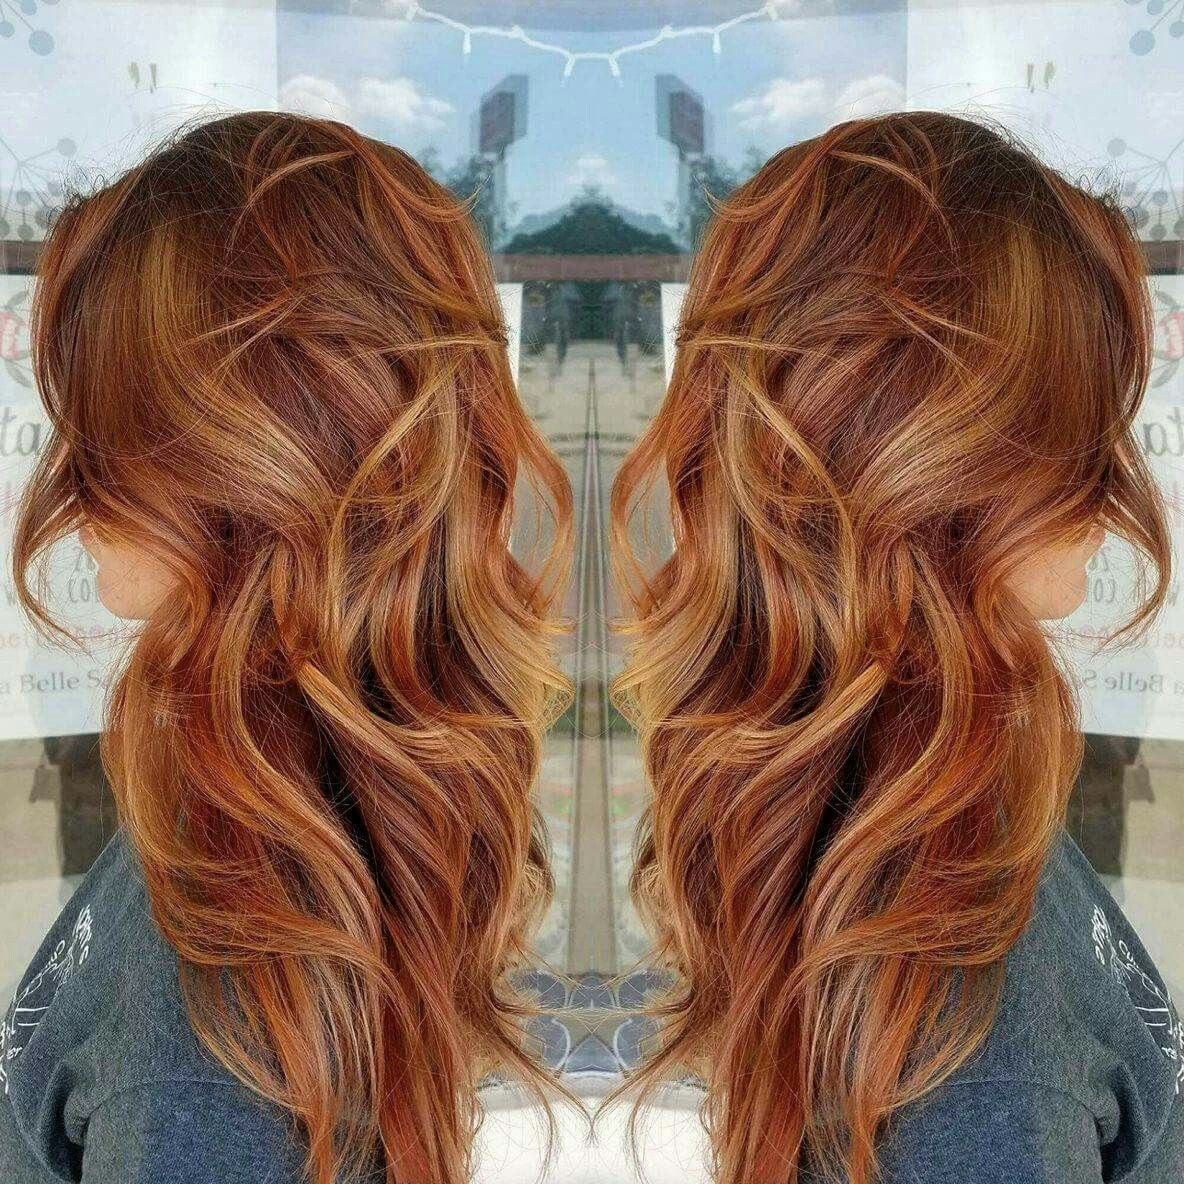 10 Stunning Red With Blonde Hair Color Ideas 55 fall hair color ideas for blonde brown and auburn hairstyles 1 2021